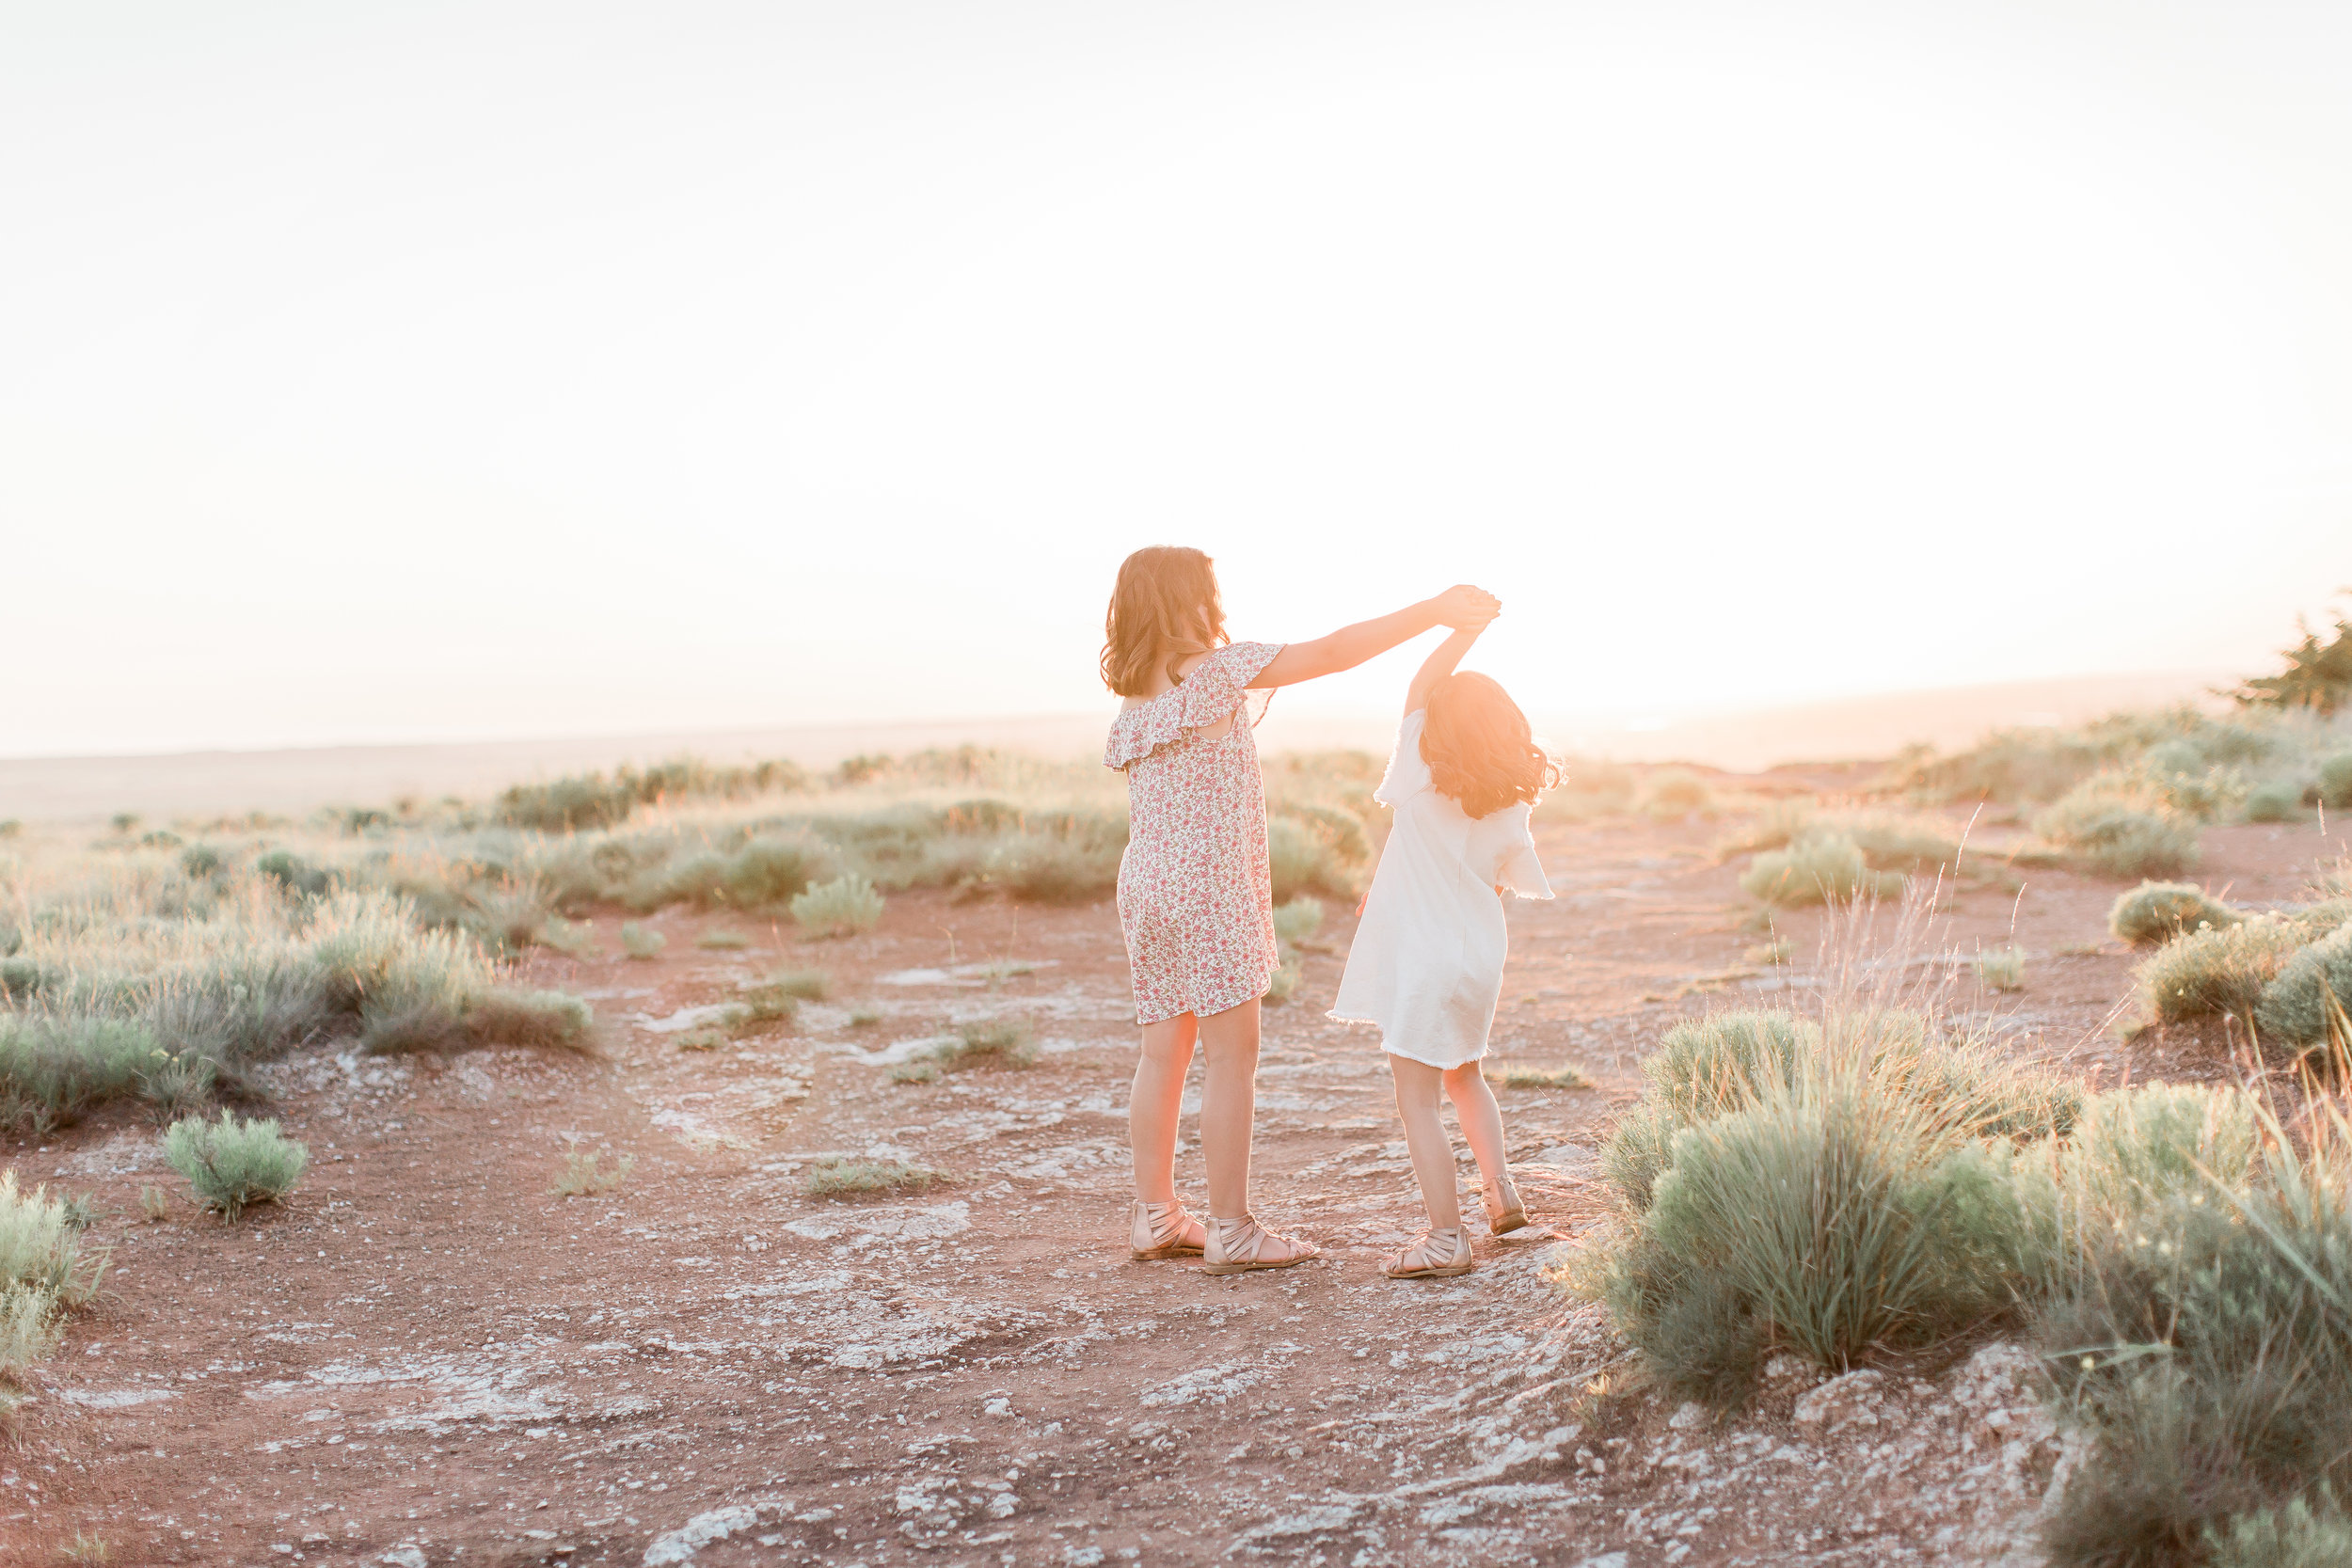 Golden Hour,  Kindred Photography Workshop , Photo by:  Hazel and Haze Photography